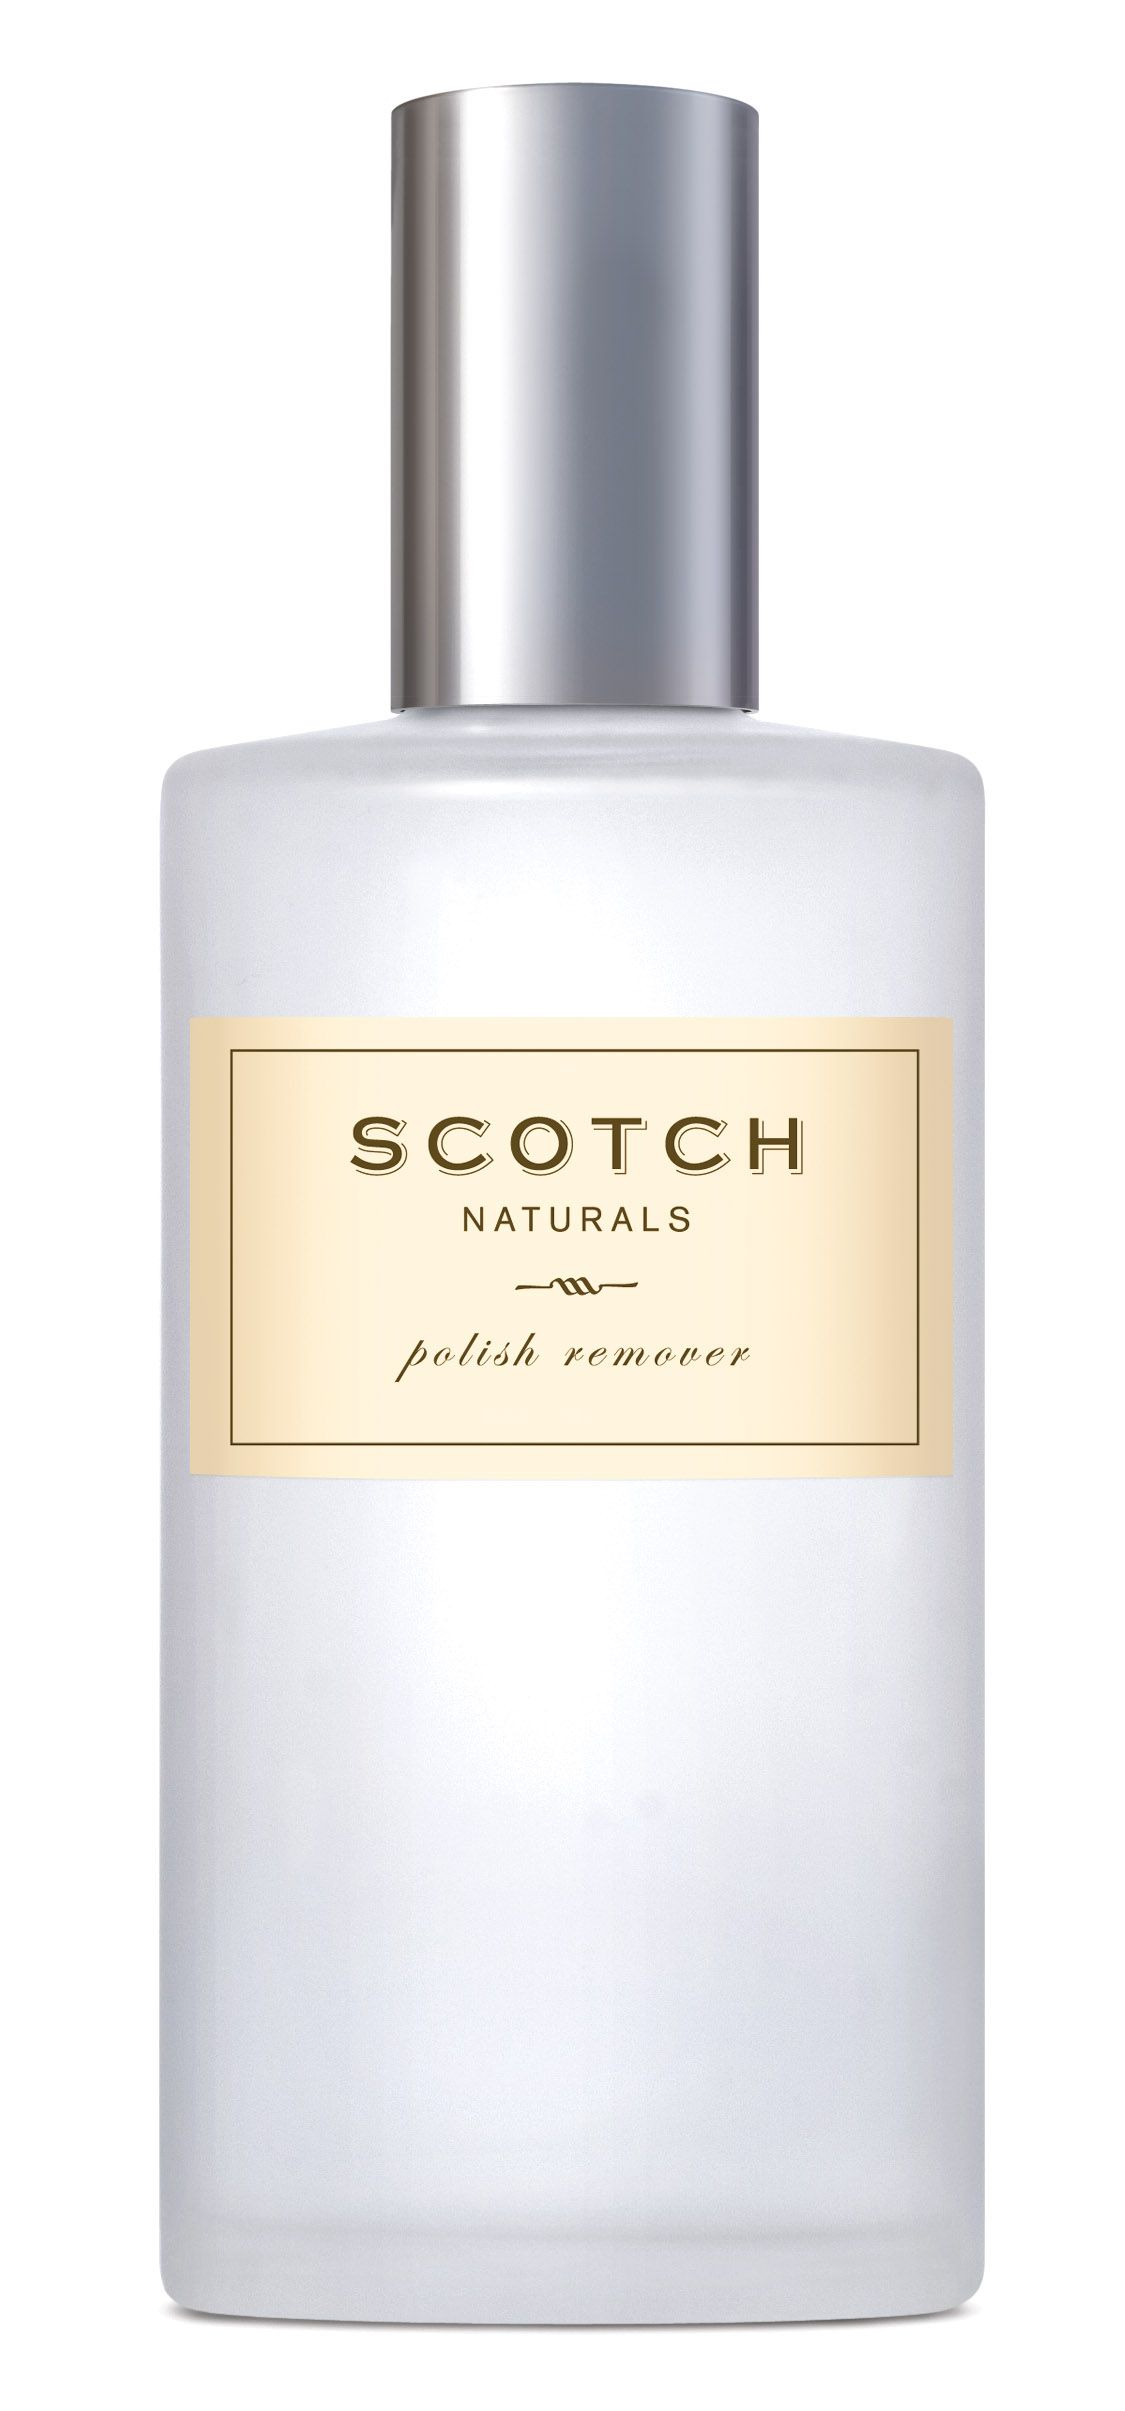 A non-toxic nail polish remover that really works! | Hair, Beauty ...